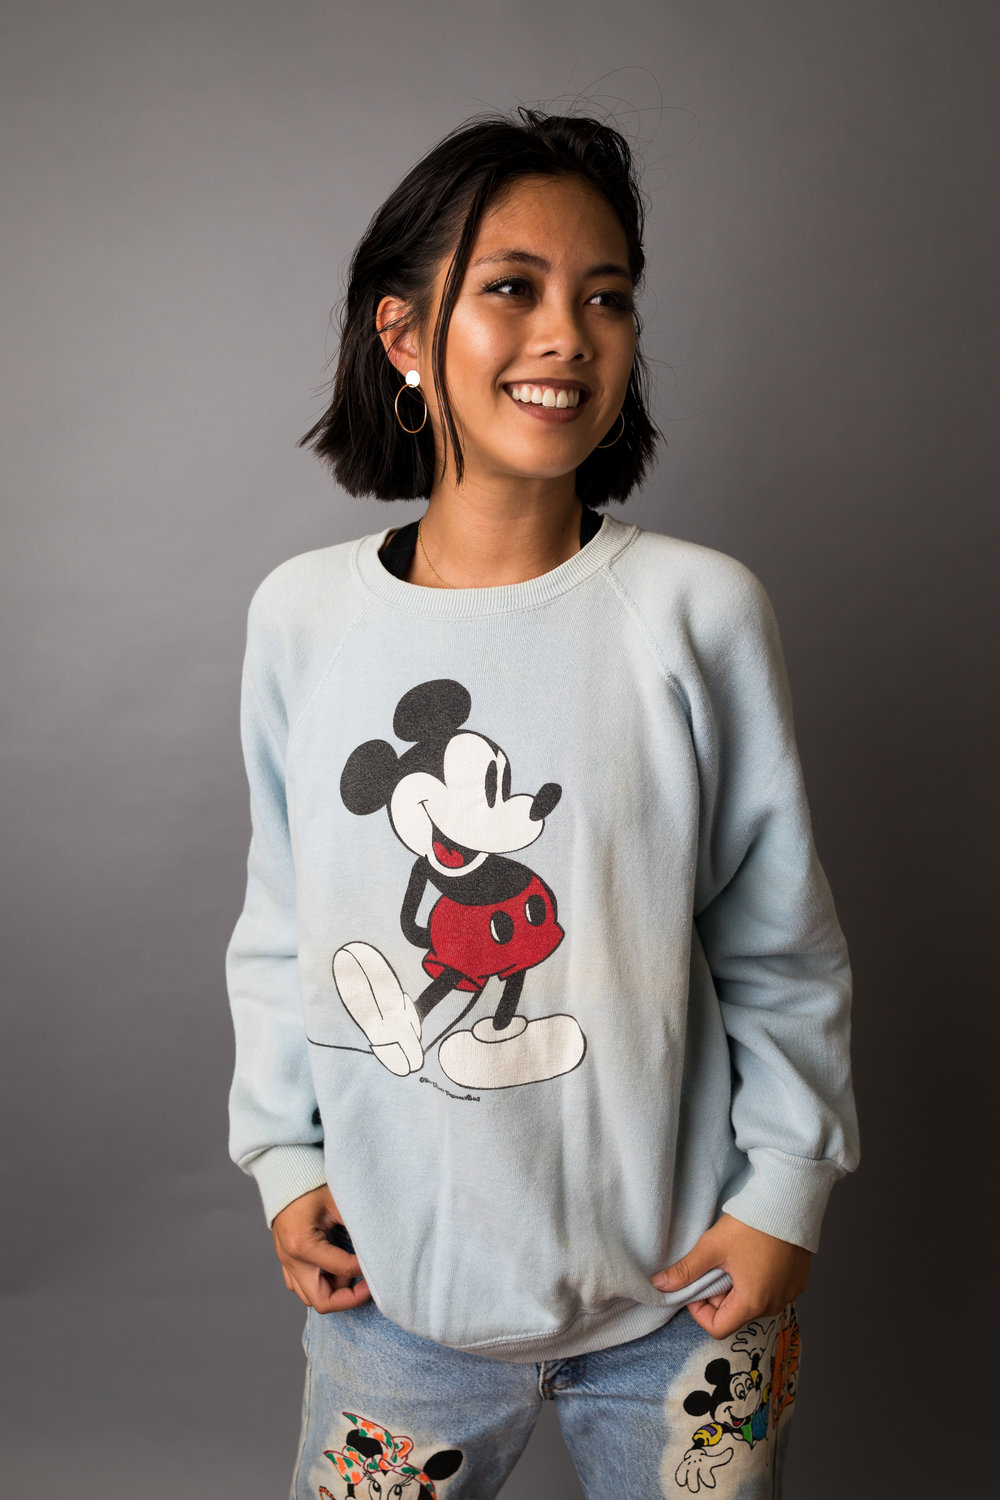 Shop Mickey Mouse finds before they all go out!